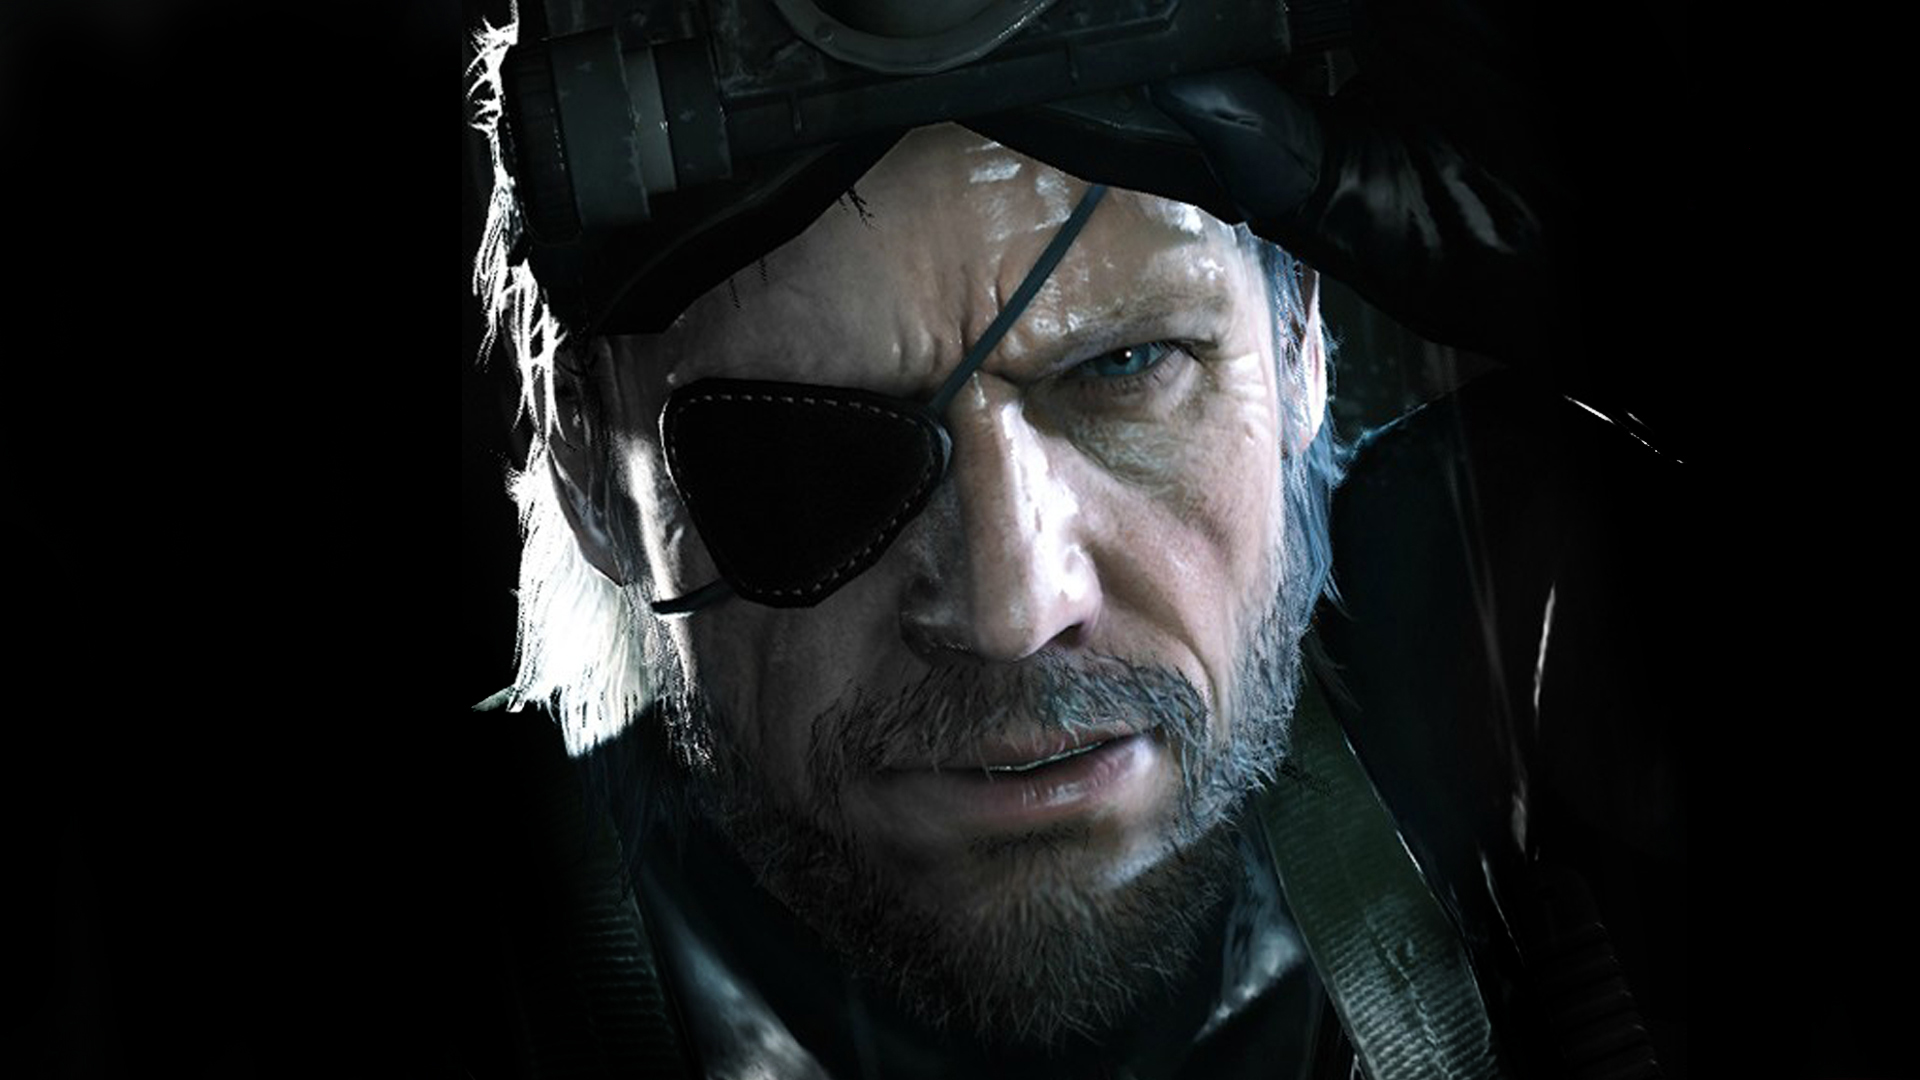 Metal-Gear-Solid-V 19102013